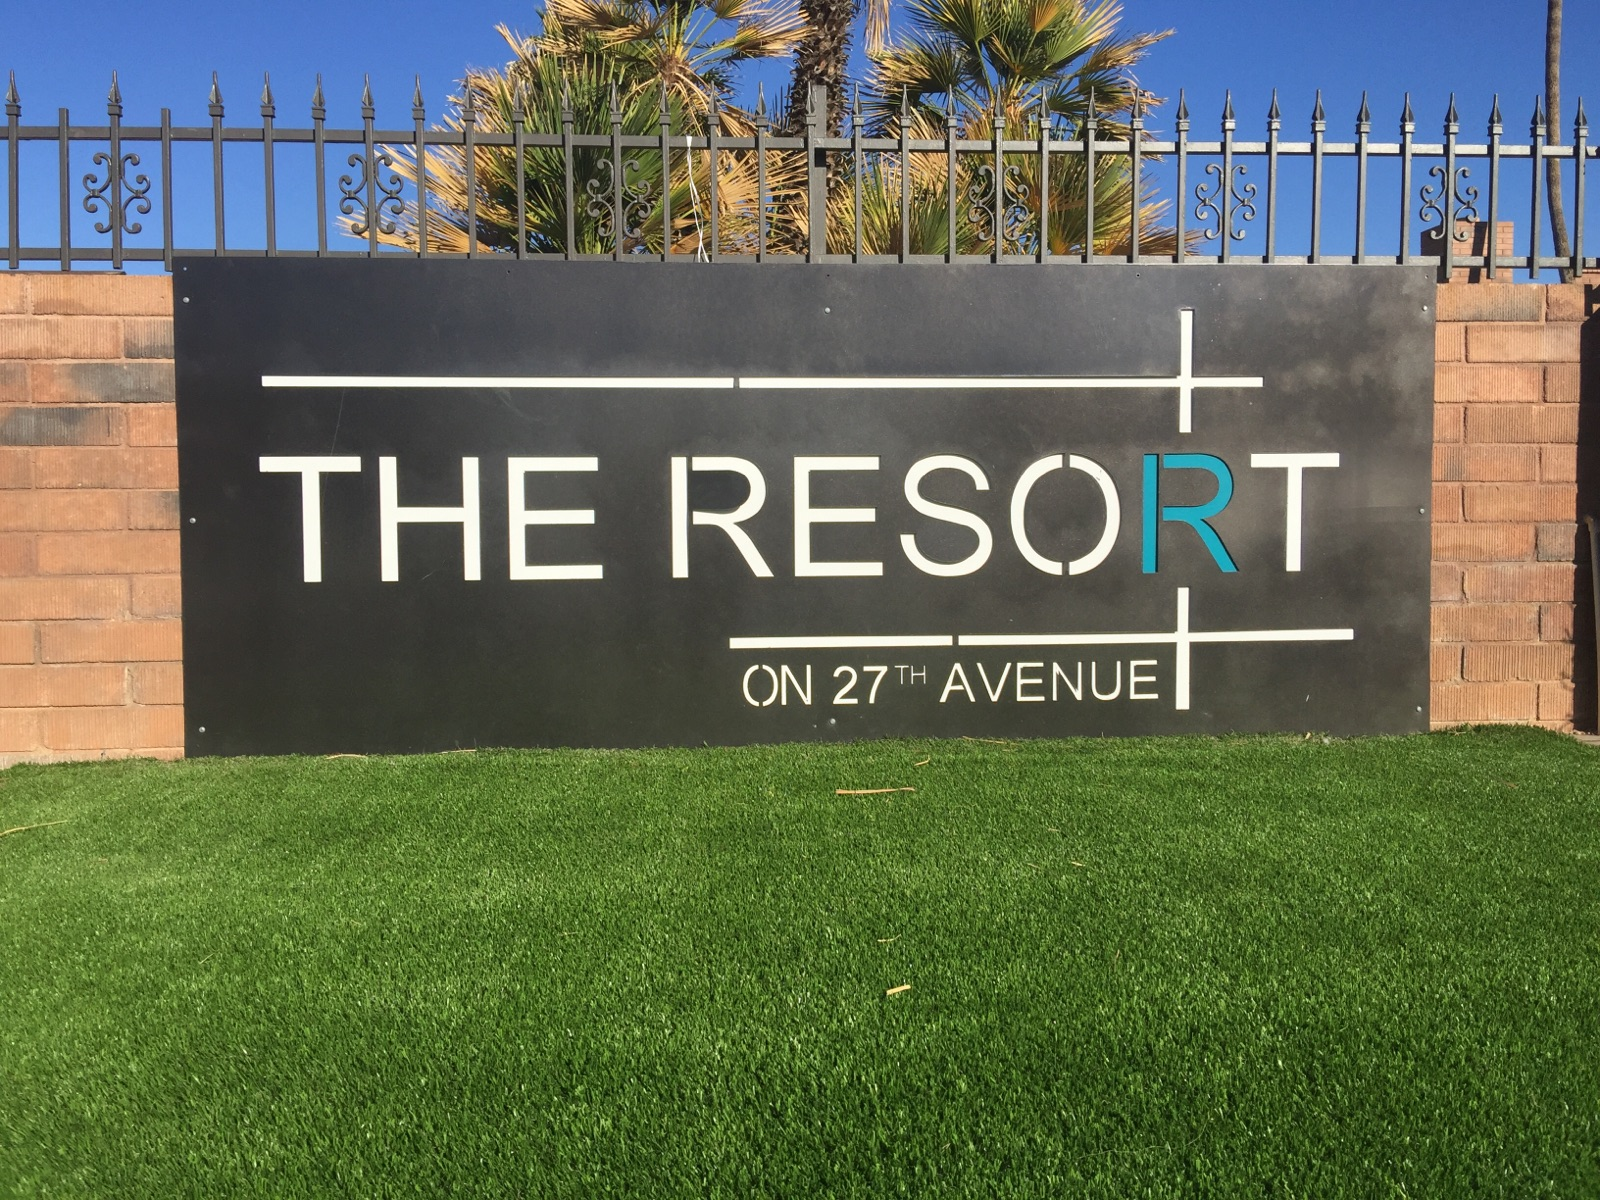 Image of The Resort on 27th